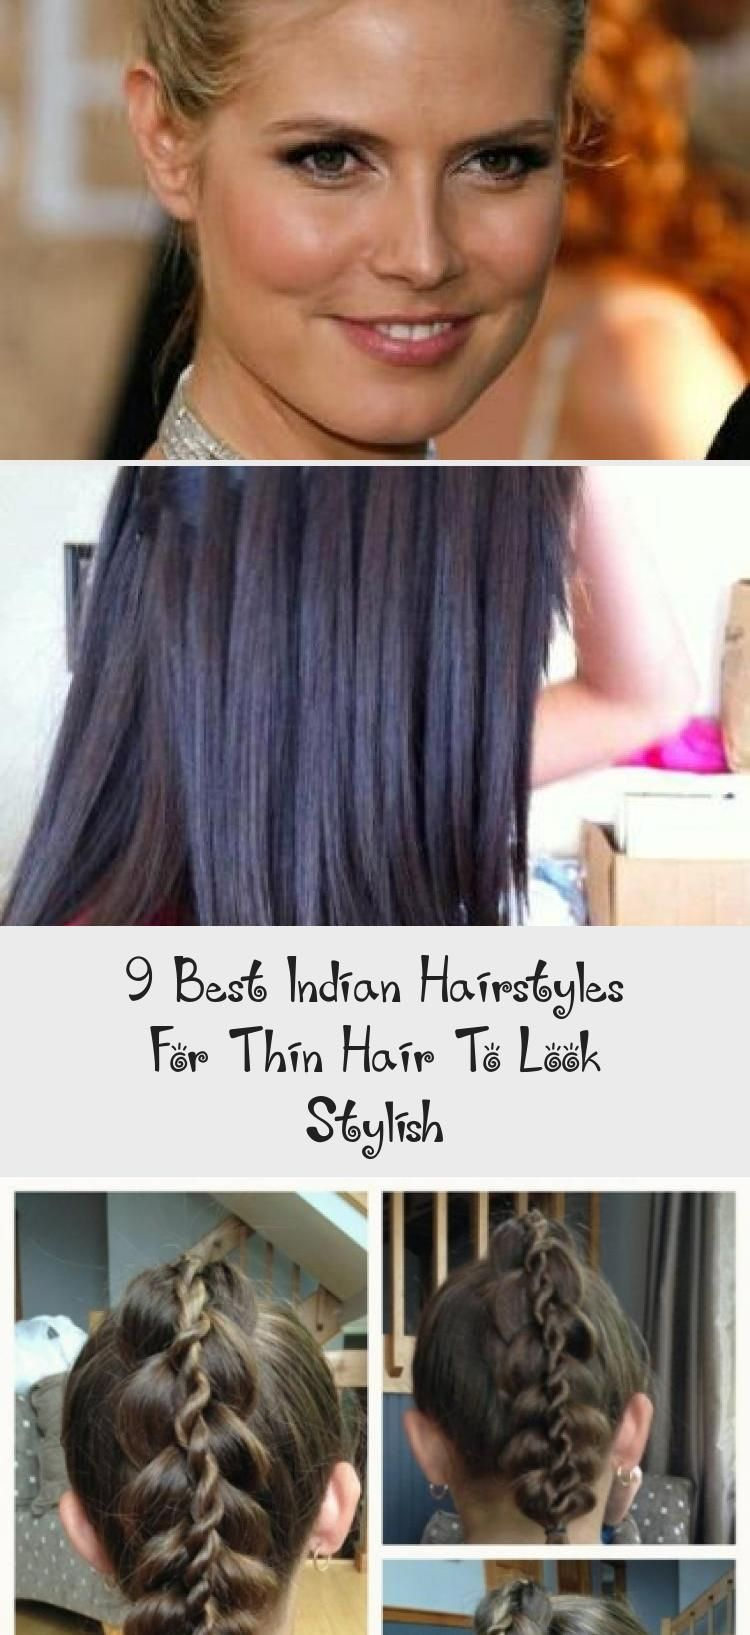 9 best indian hairstyles for thin hair to look stylish in